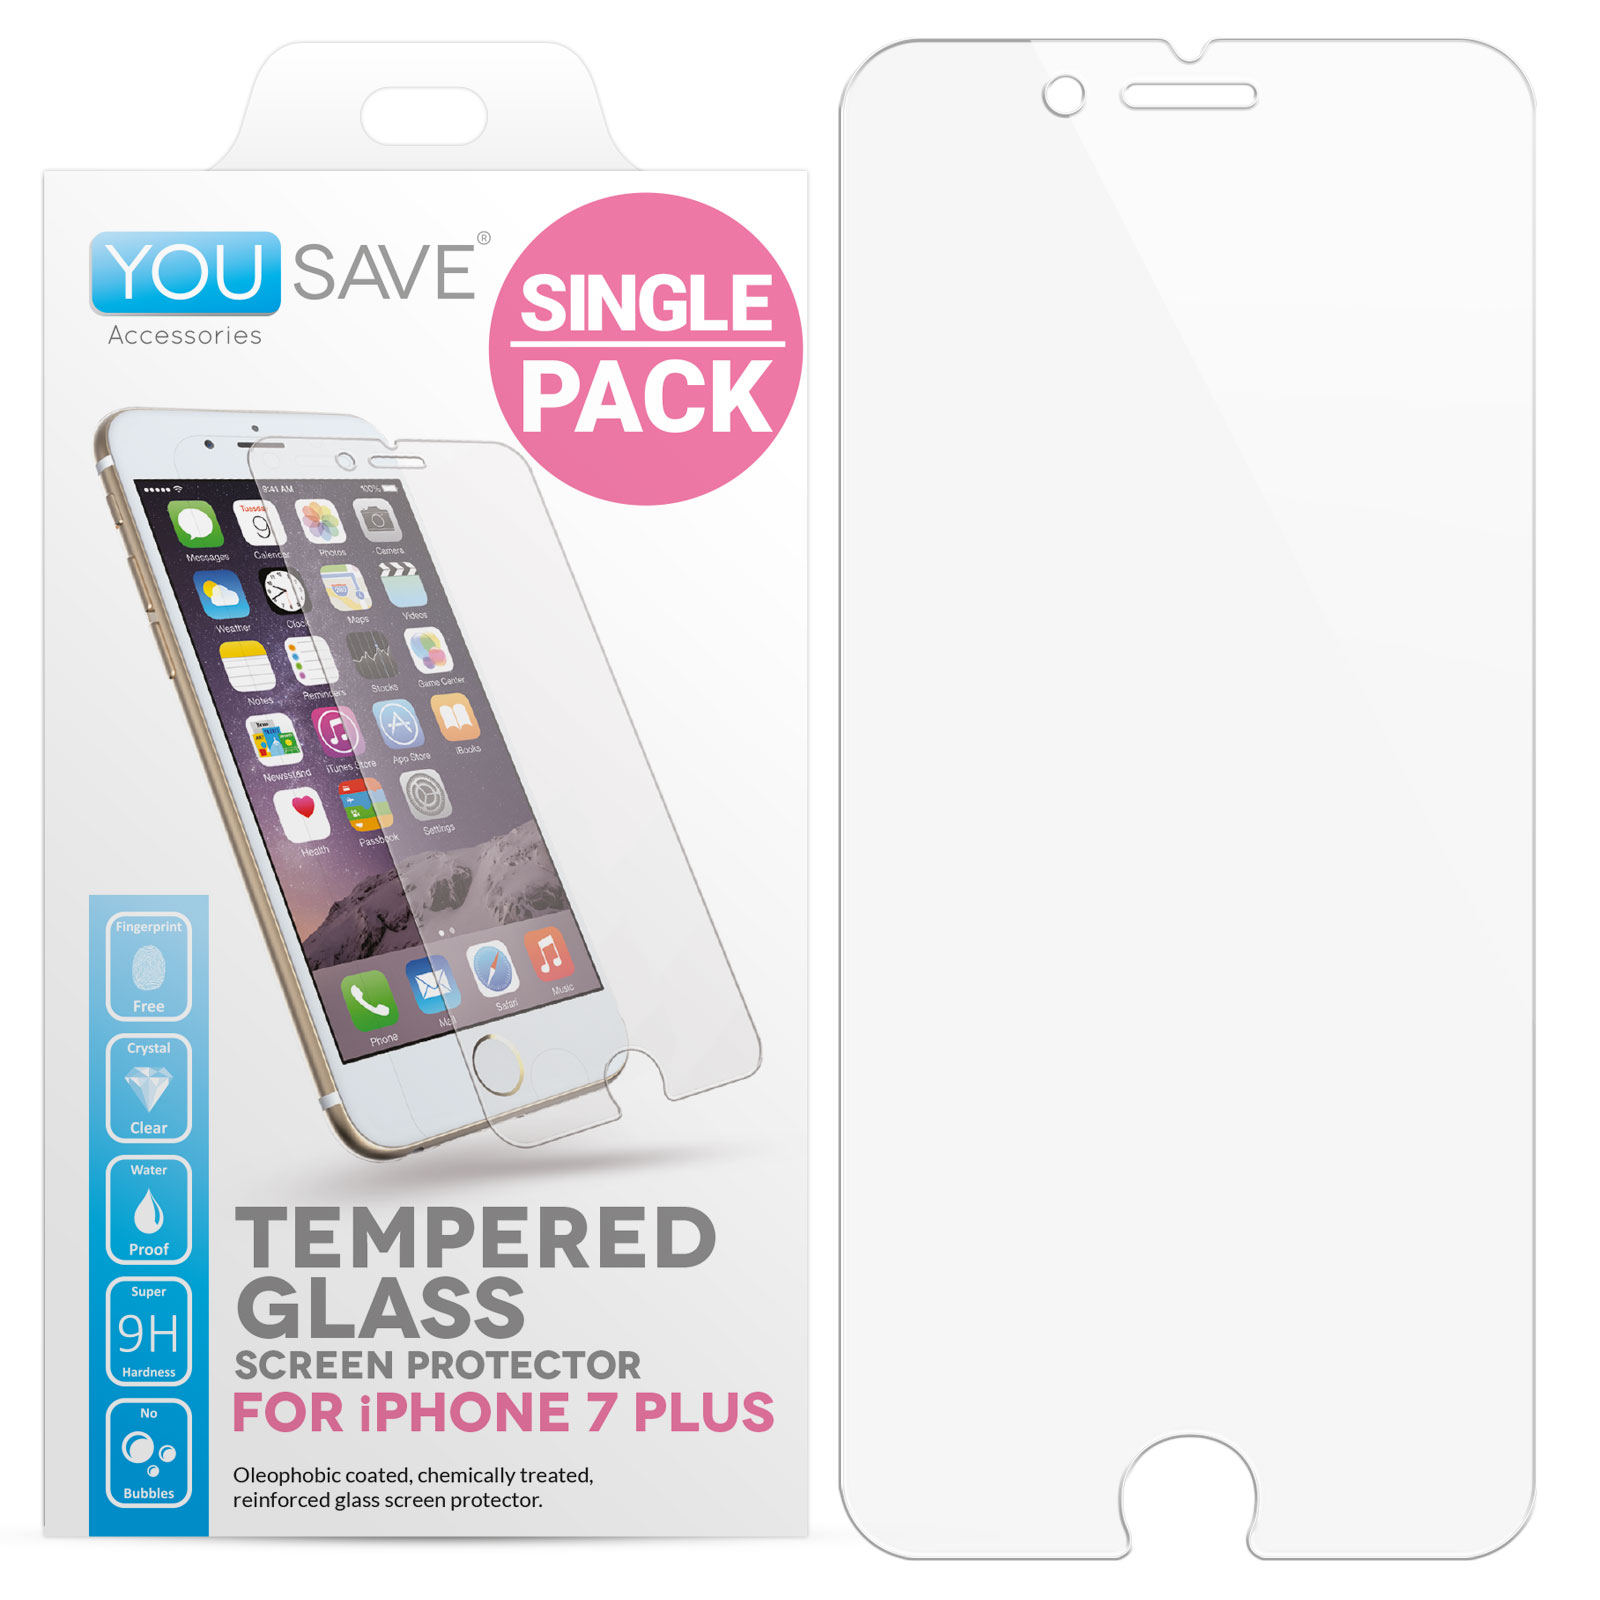 Yousave Accessories  iPhone 7 Plus Glass Screen Protector